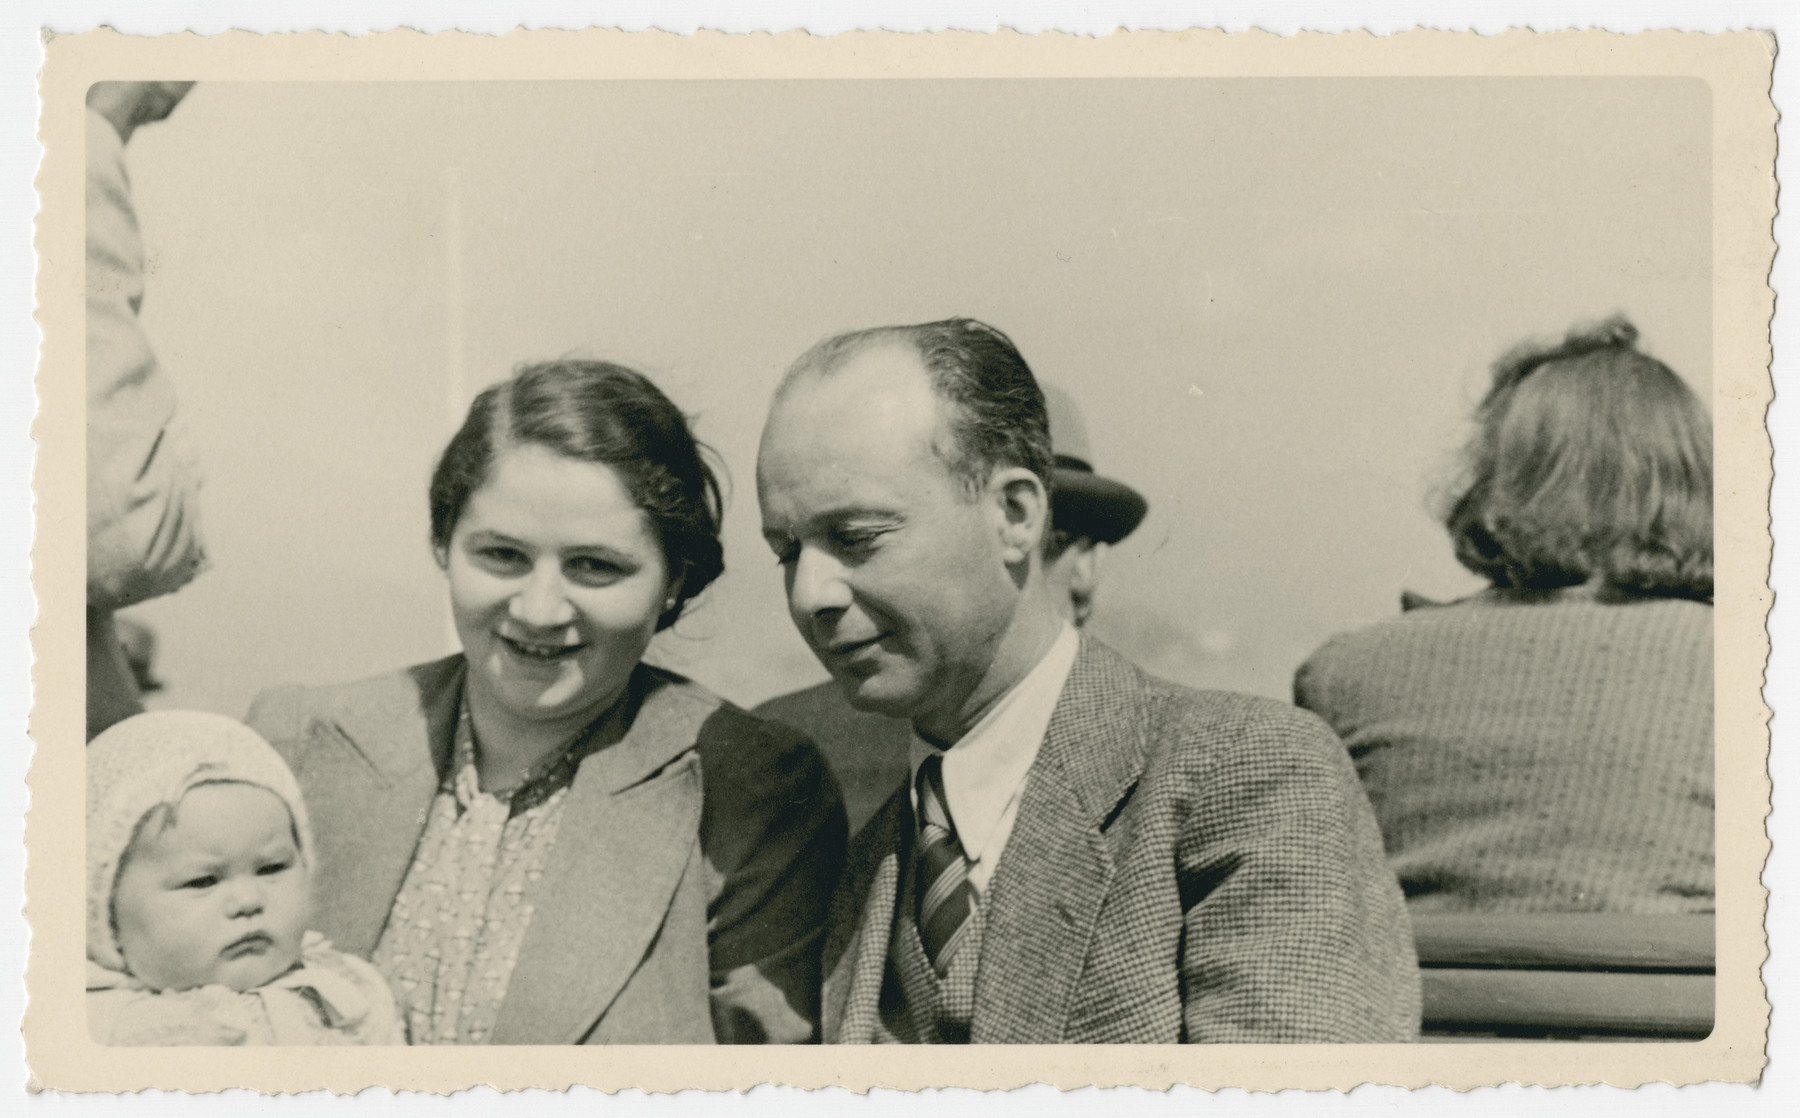 Close-up portrait of Guido Nacamu with his wife Lisl Meier Nacamu and daughter Adelaide.  They later immigrated to the United States.